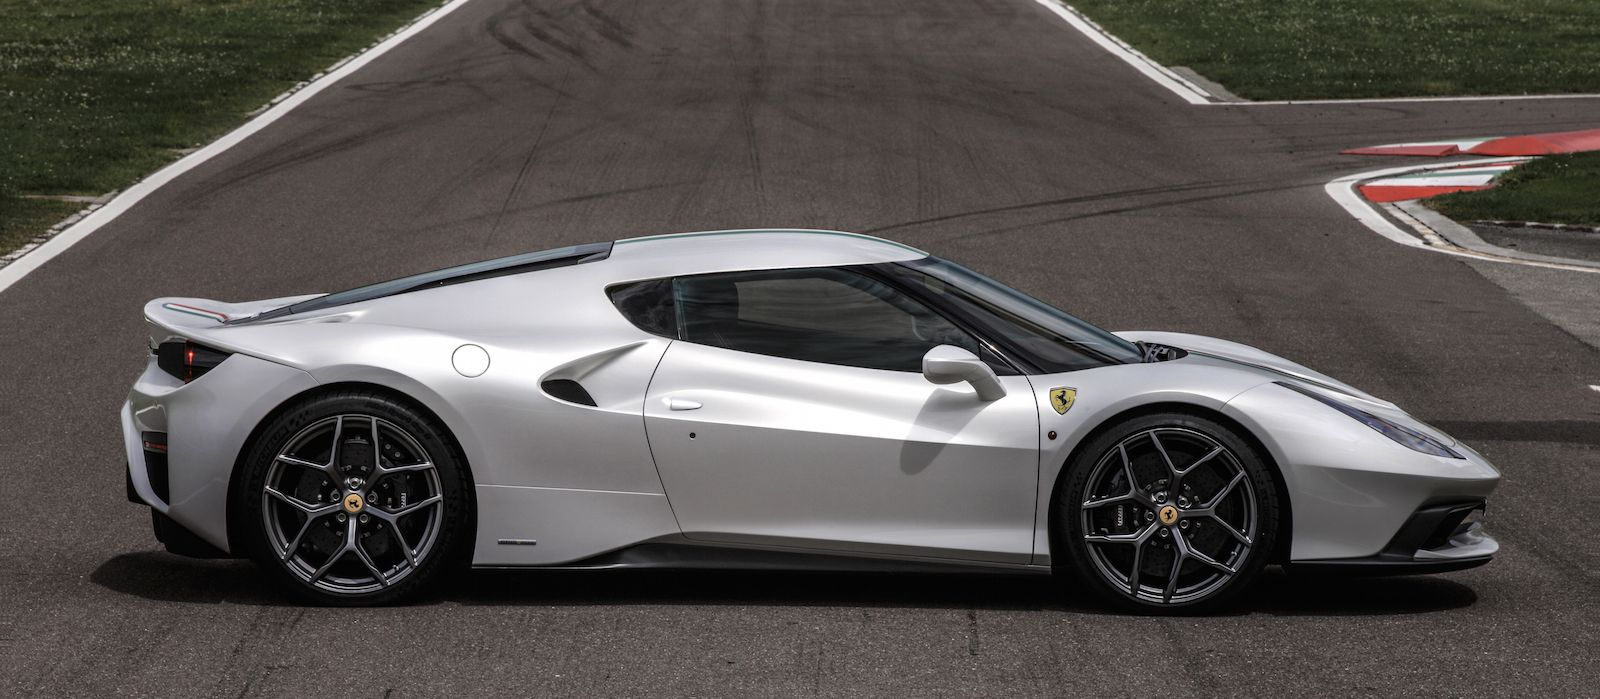 Best One-Off Cars - Coolest One-Off Automobiles